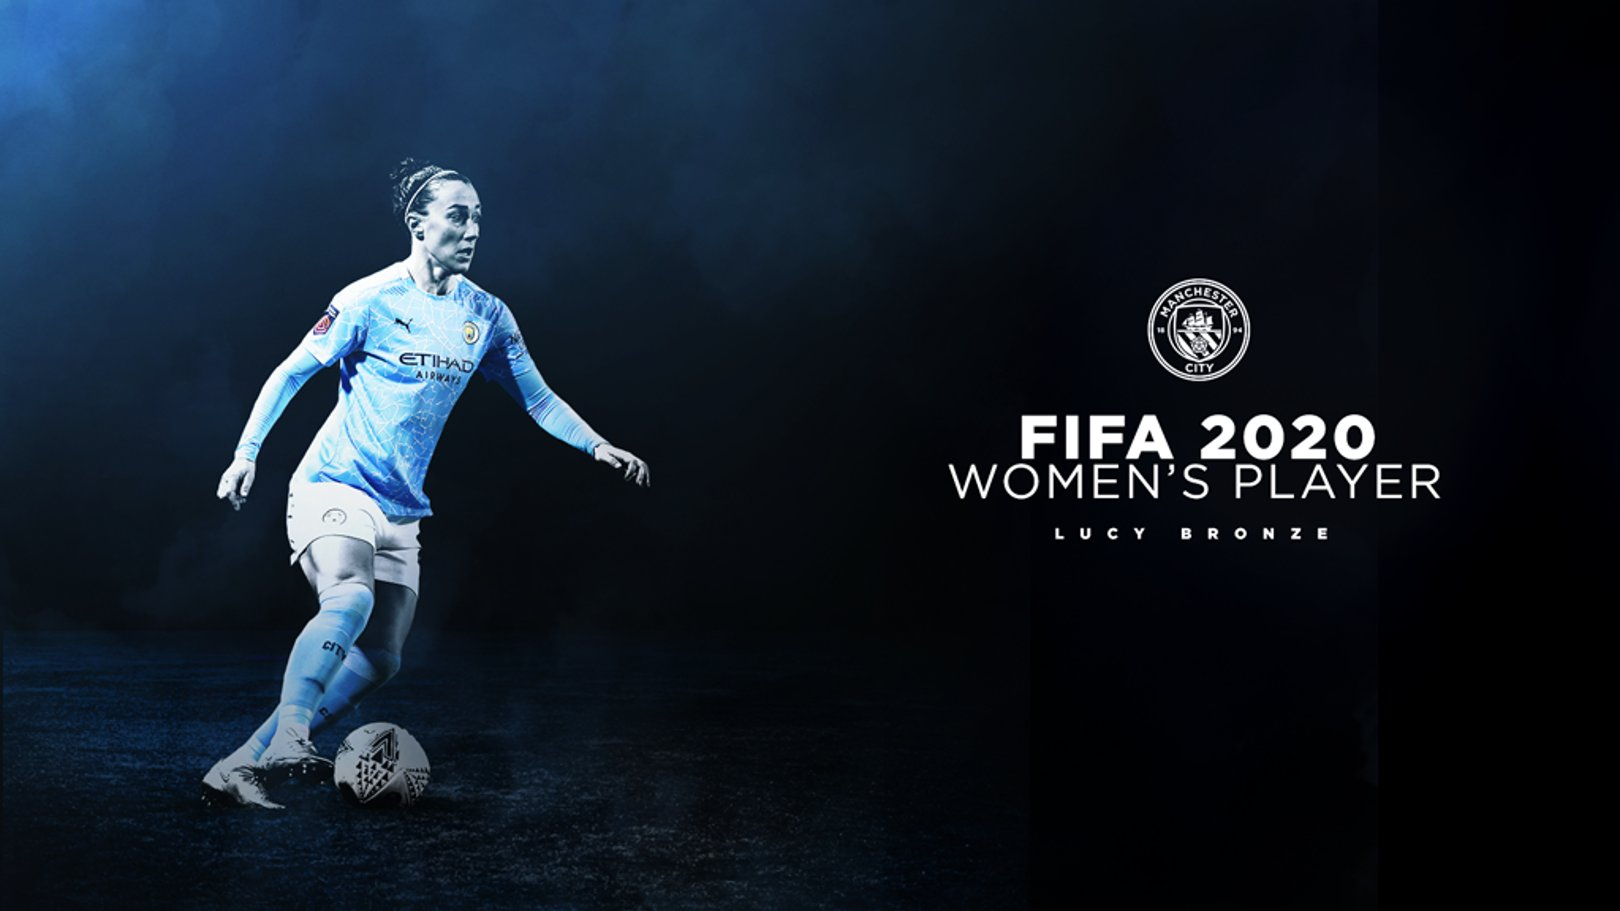 Bronze named The Best FIFA Women's Player of the Year for 2020